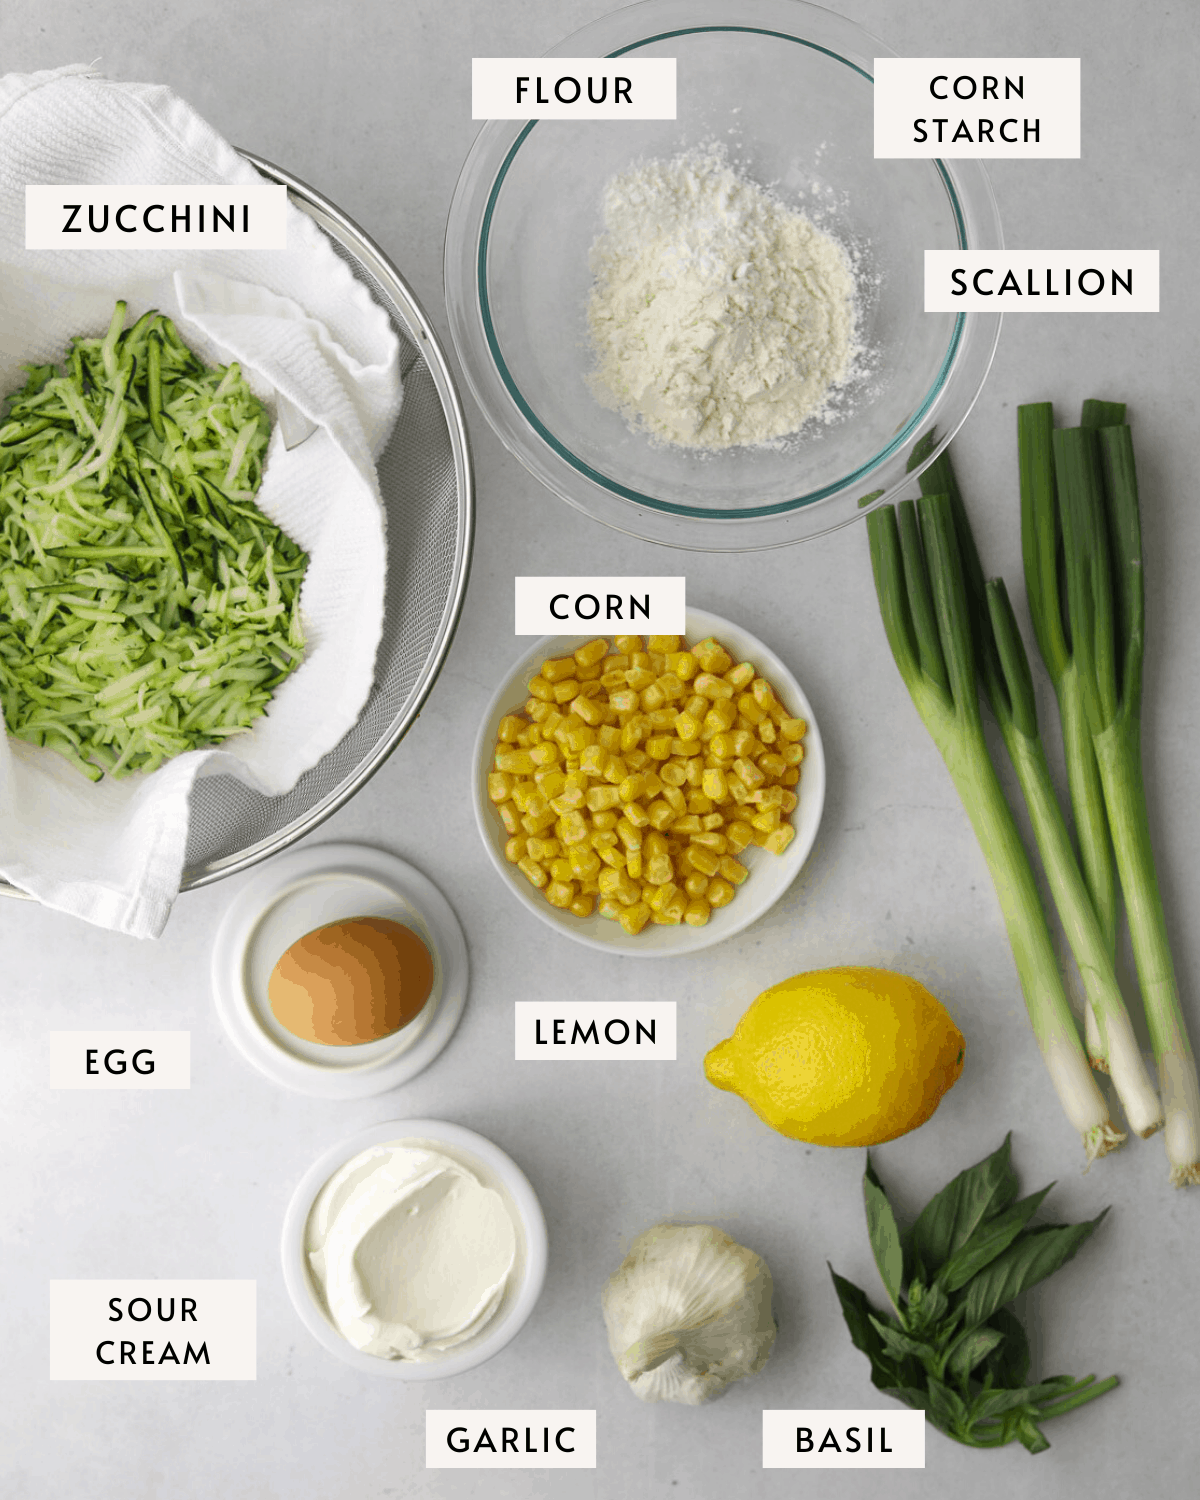 corn and zucchini fritter ingredients portioned individually; a bowl of corn, grated zucchini, flour, corn starch, egg, etc